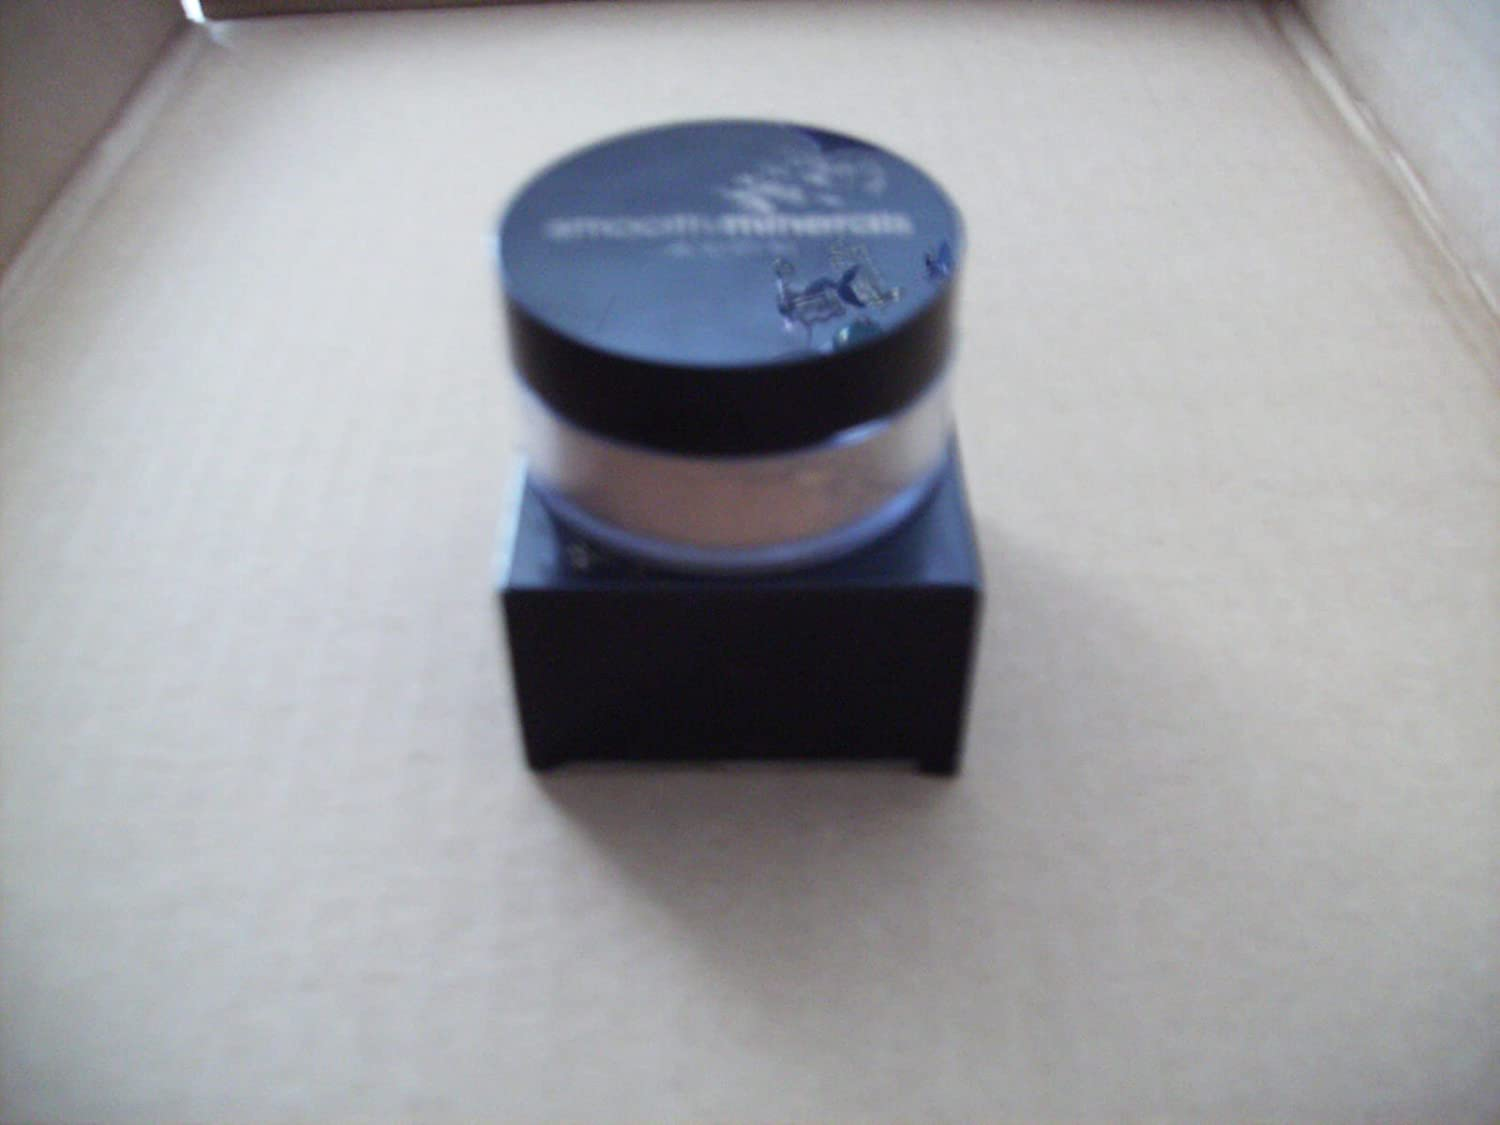 Avon Smooth Minerals Foundation Nude Powder 0.2 oz